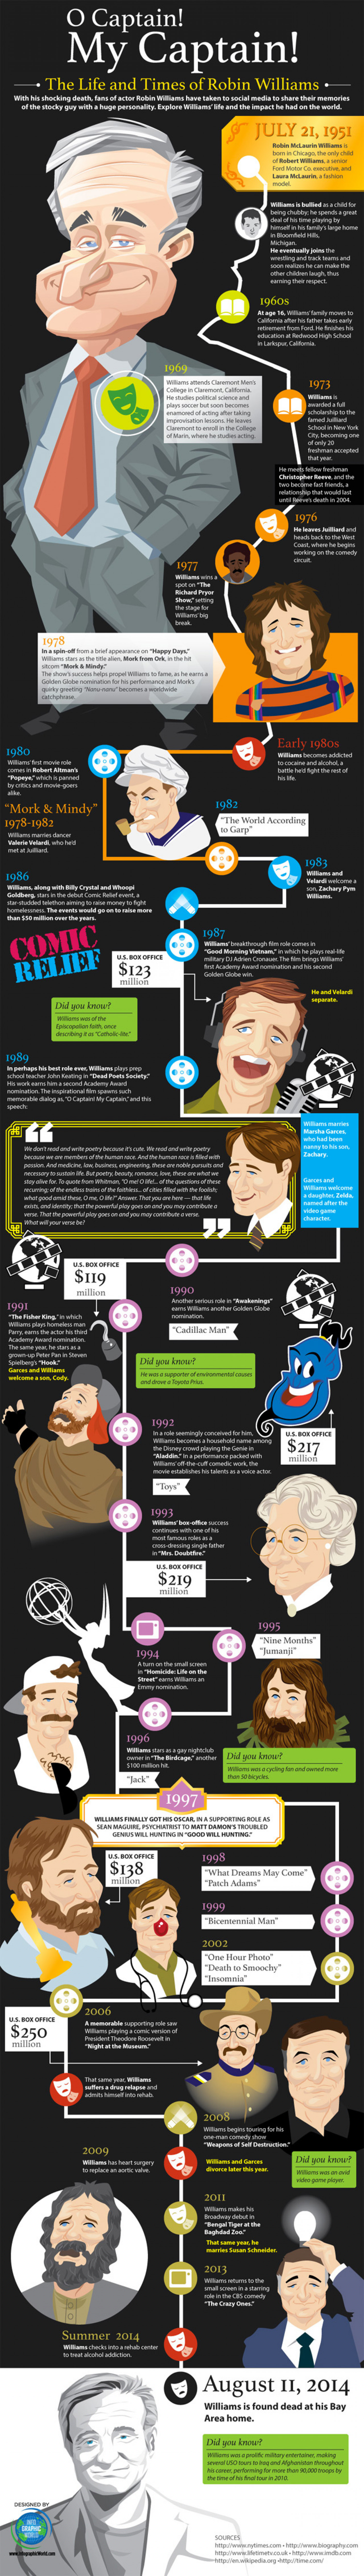 The Life and Times of Robin Williams Infographic